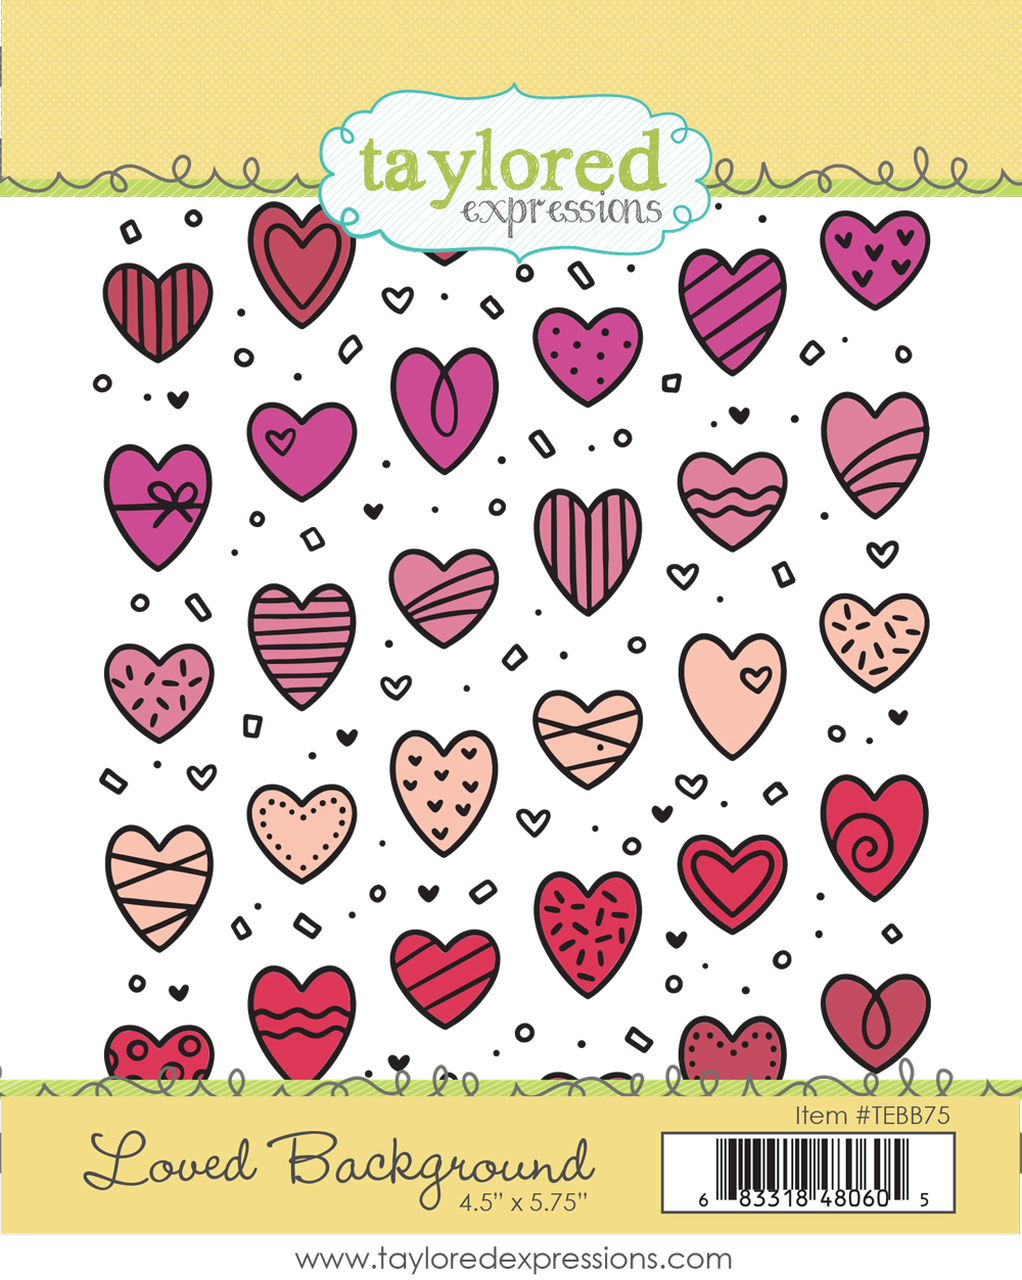 *NEW* - Taylored Expression - Loved Background DUE IN FEBRUARY